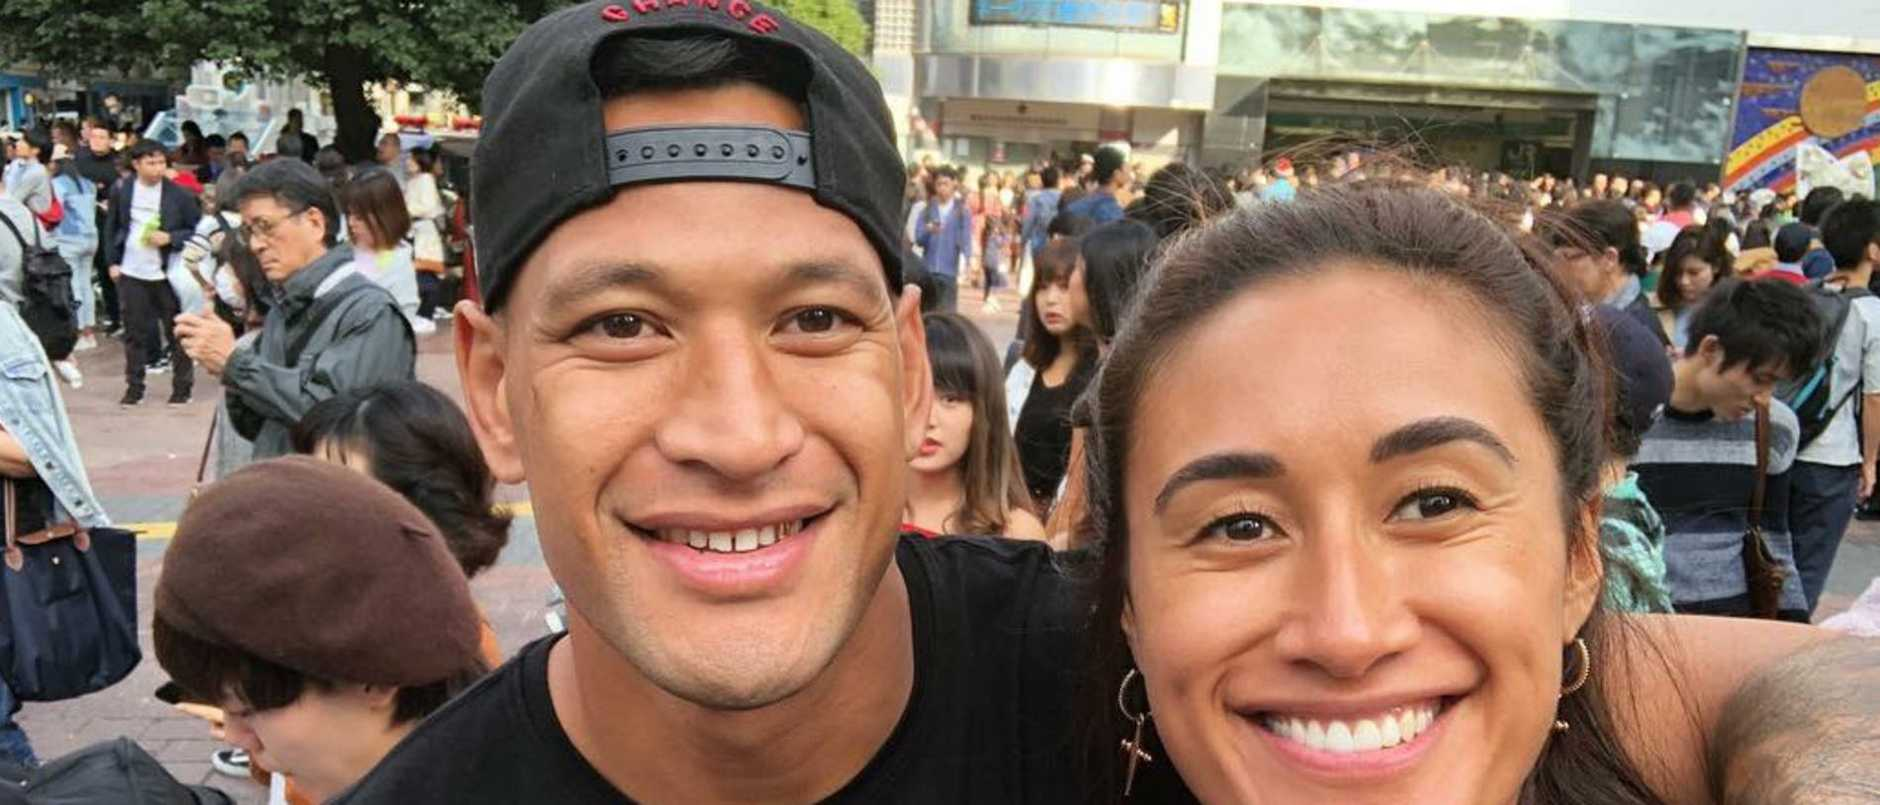 Israel Folau and wife Maria, who plays for the Thunderbirds in the Super Netball.